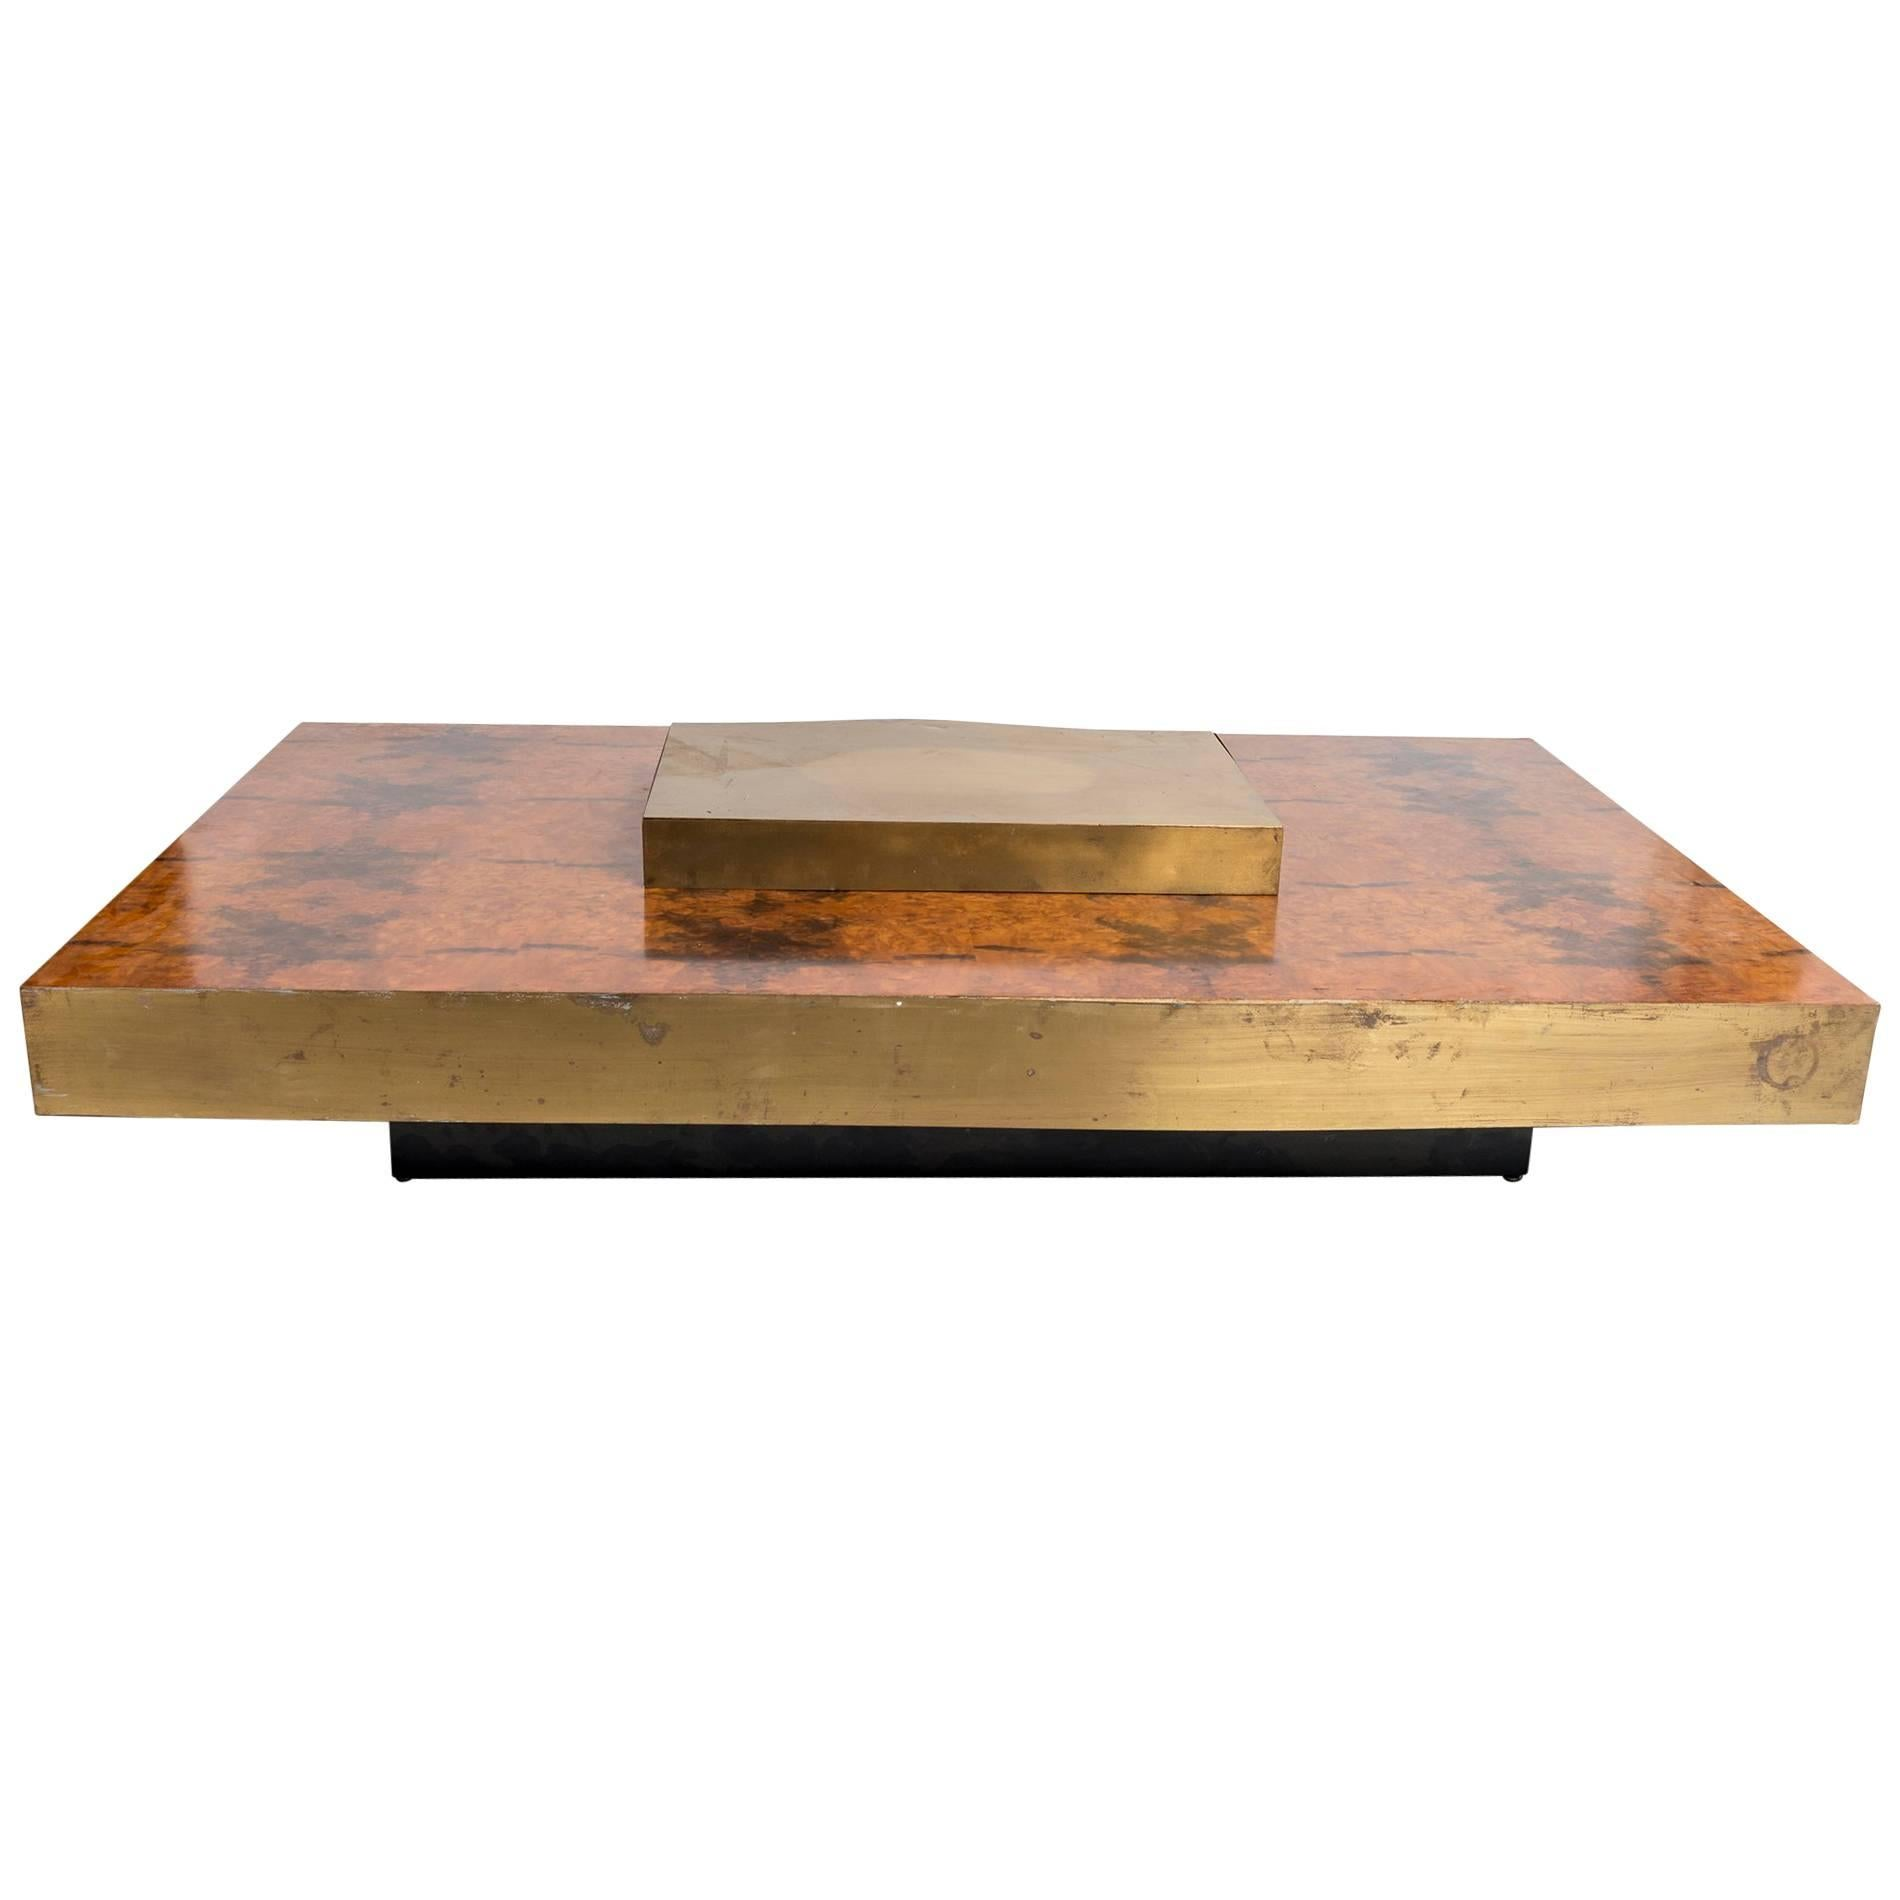 Rectangular Low Brass Center Wooden Coffee Table With Brass Trim